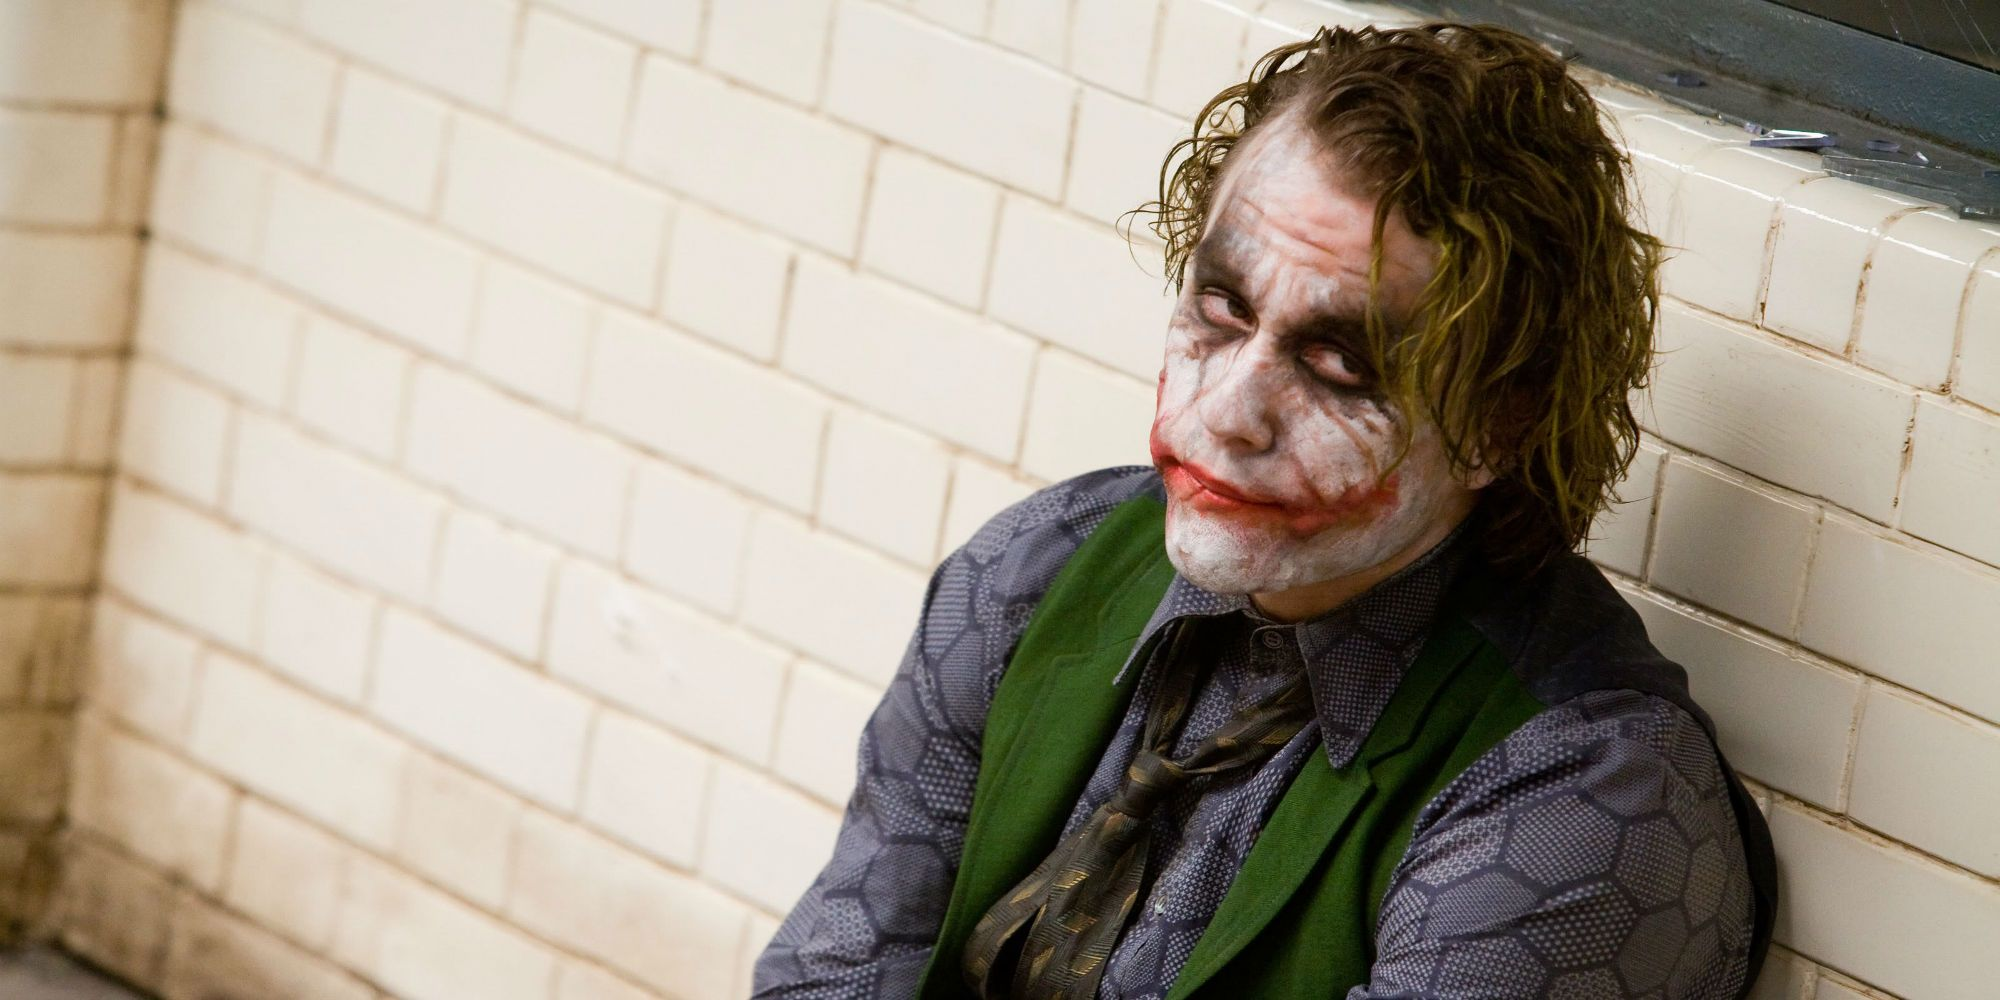 Heath Ledger Wanted To Play The Joker Again After Dark Knight